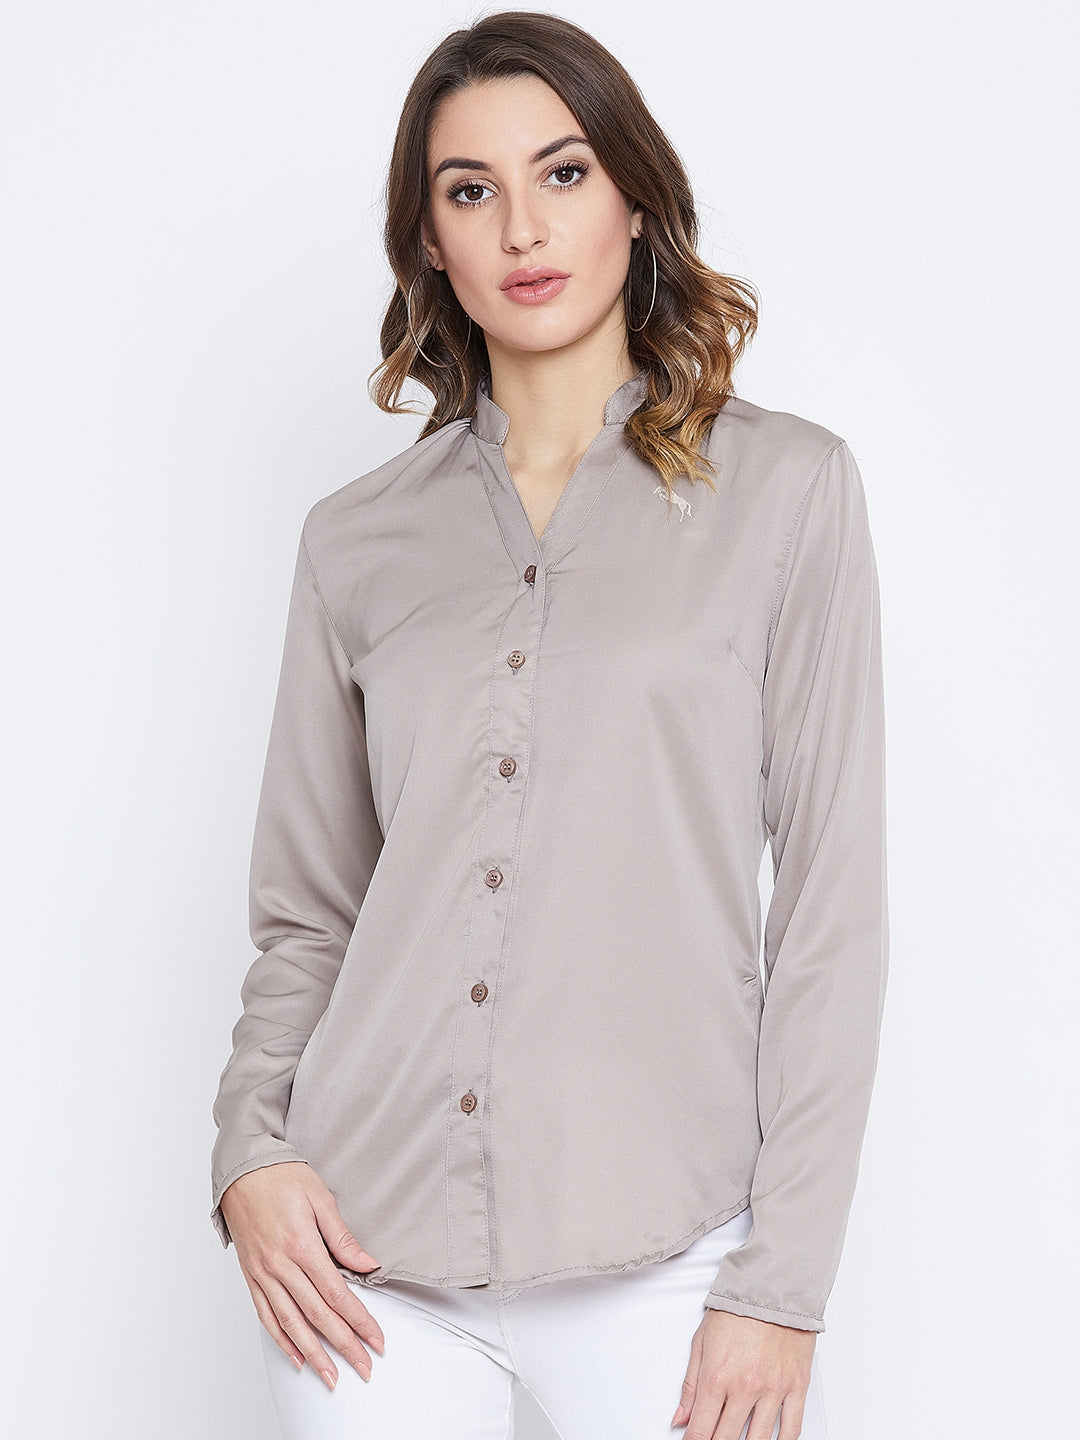 JUMP USA Women Beige Solid Casual Shirts - JUMP USA